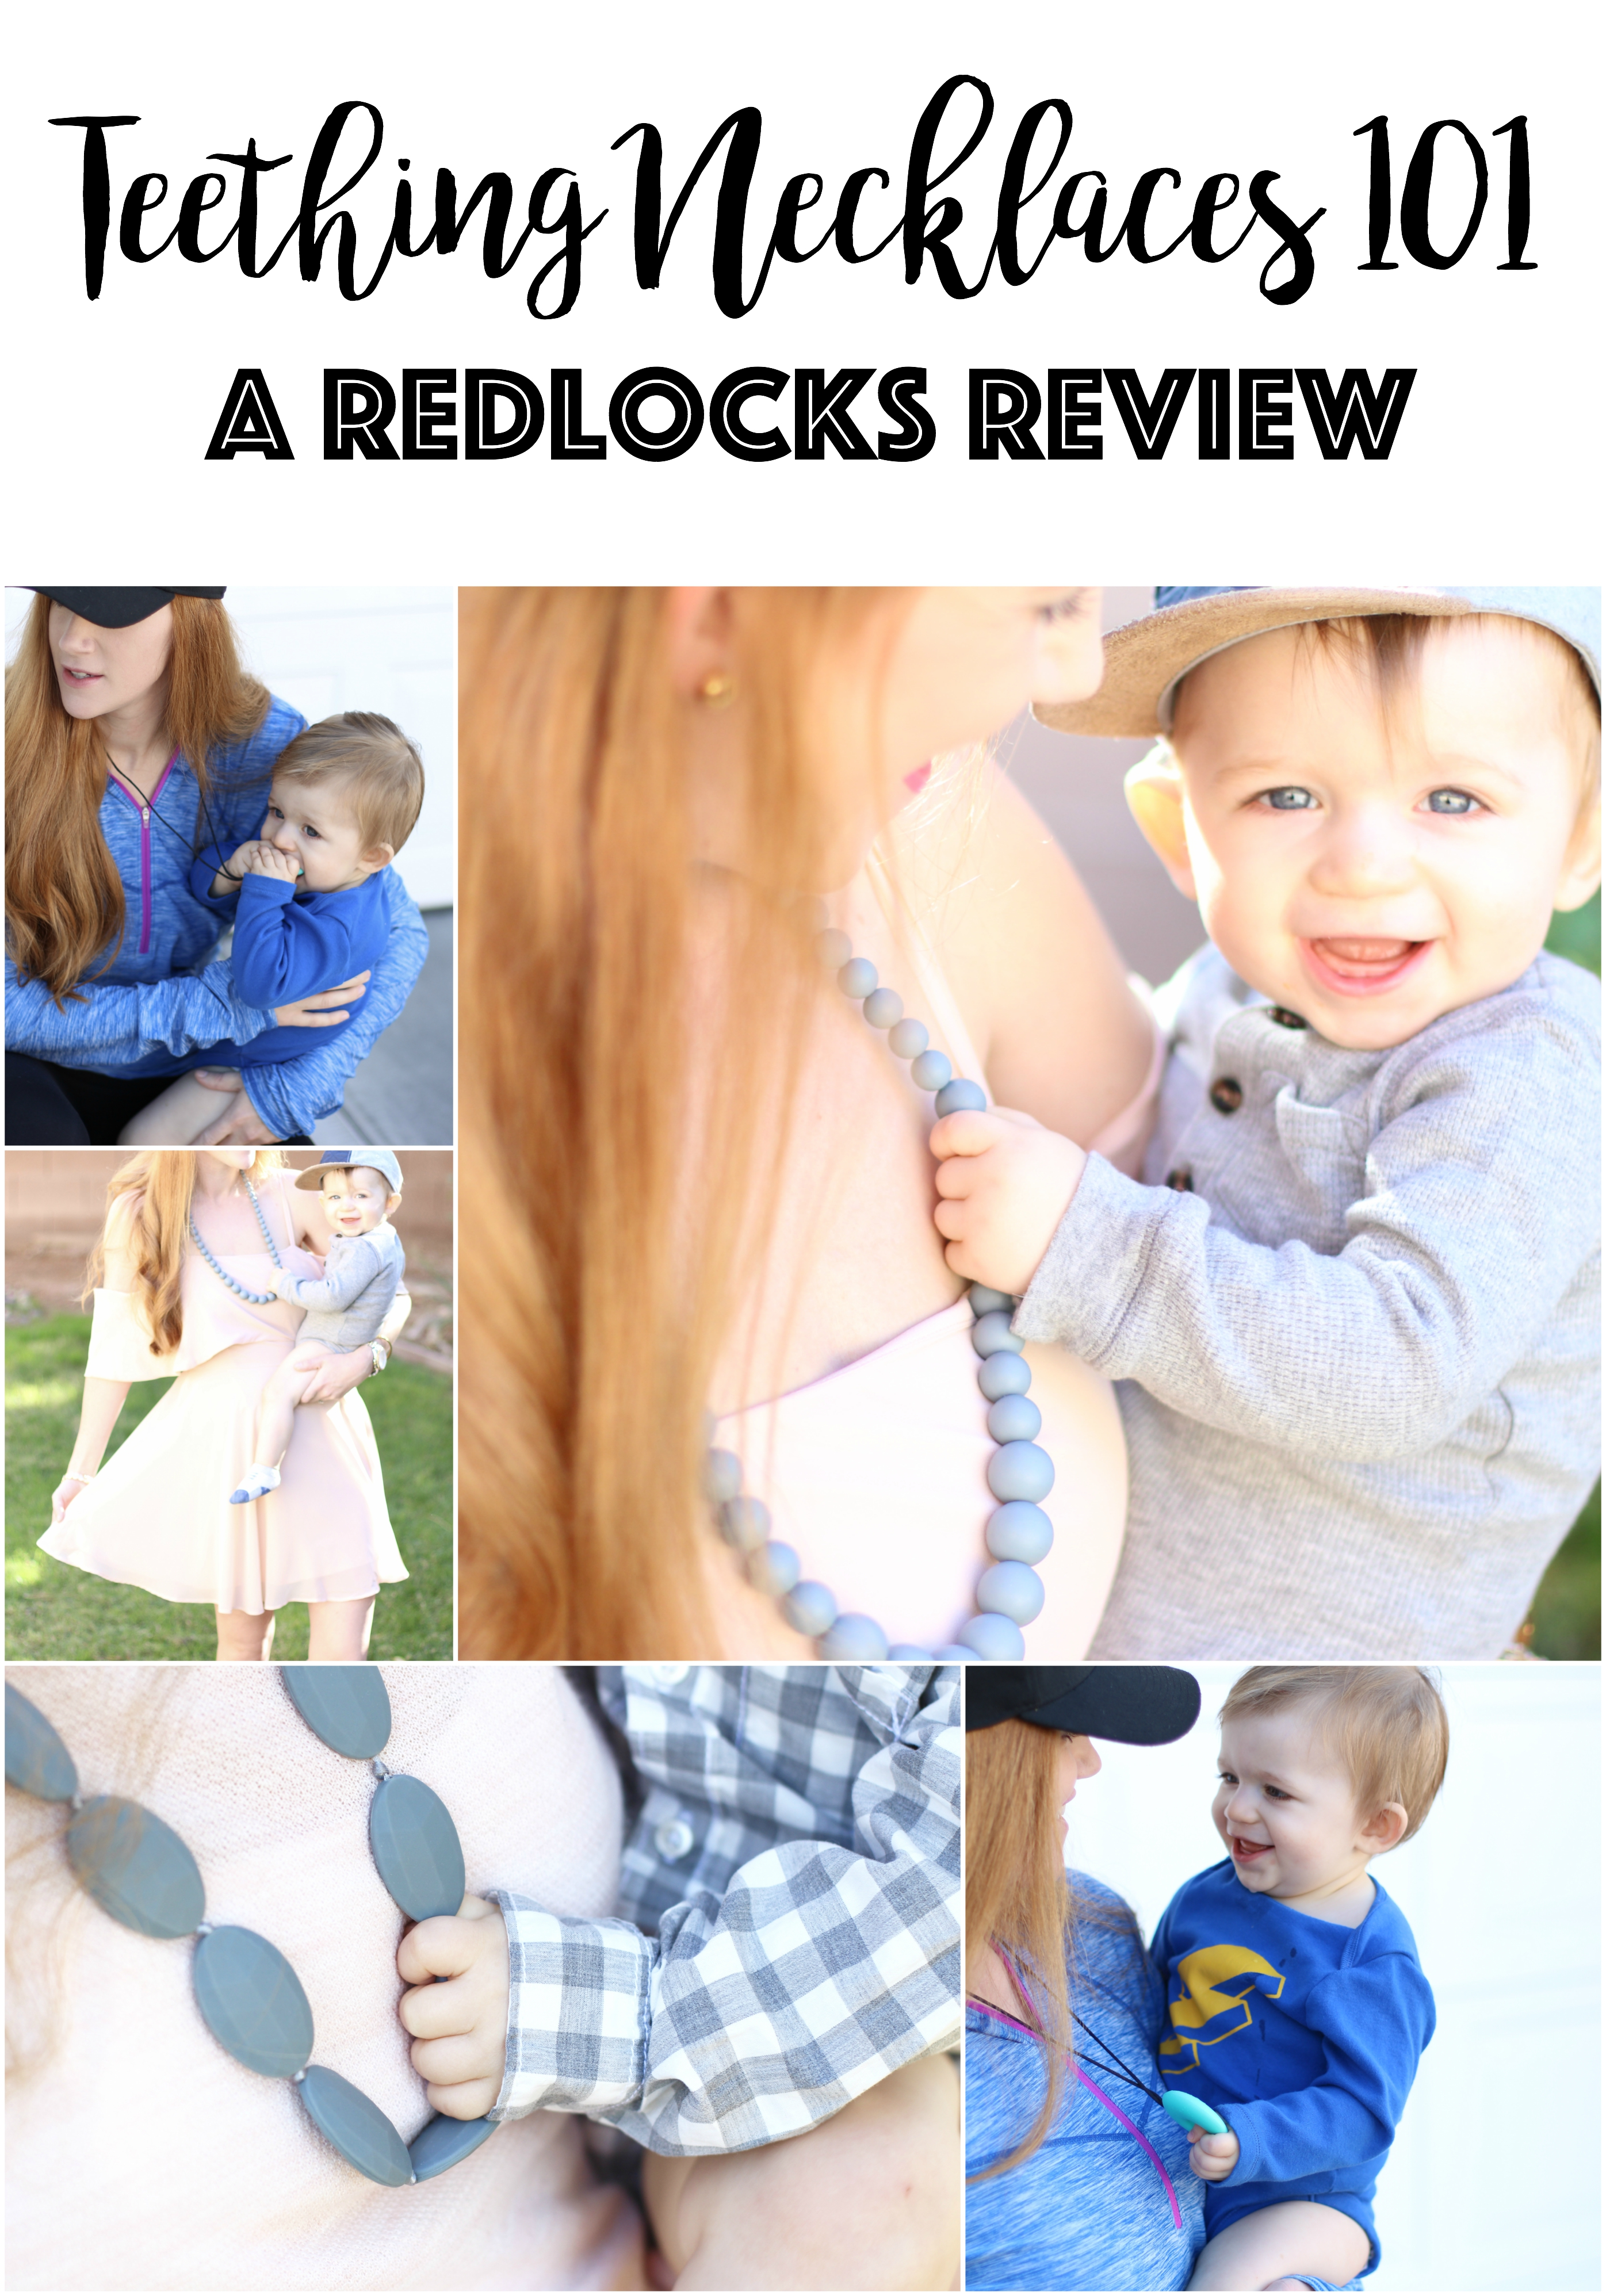 Teething Necklaces 101: A Redlocks Review